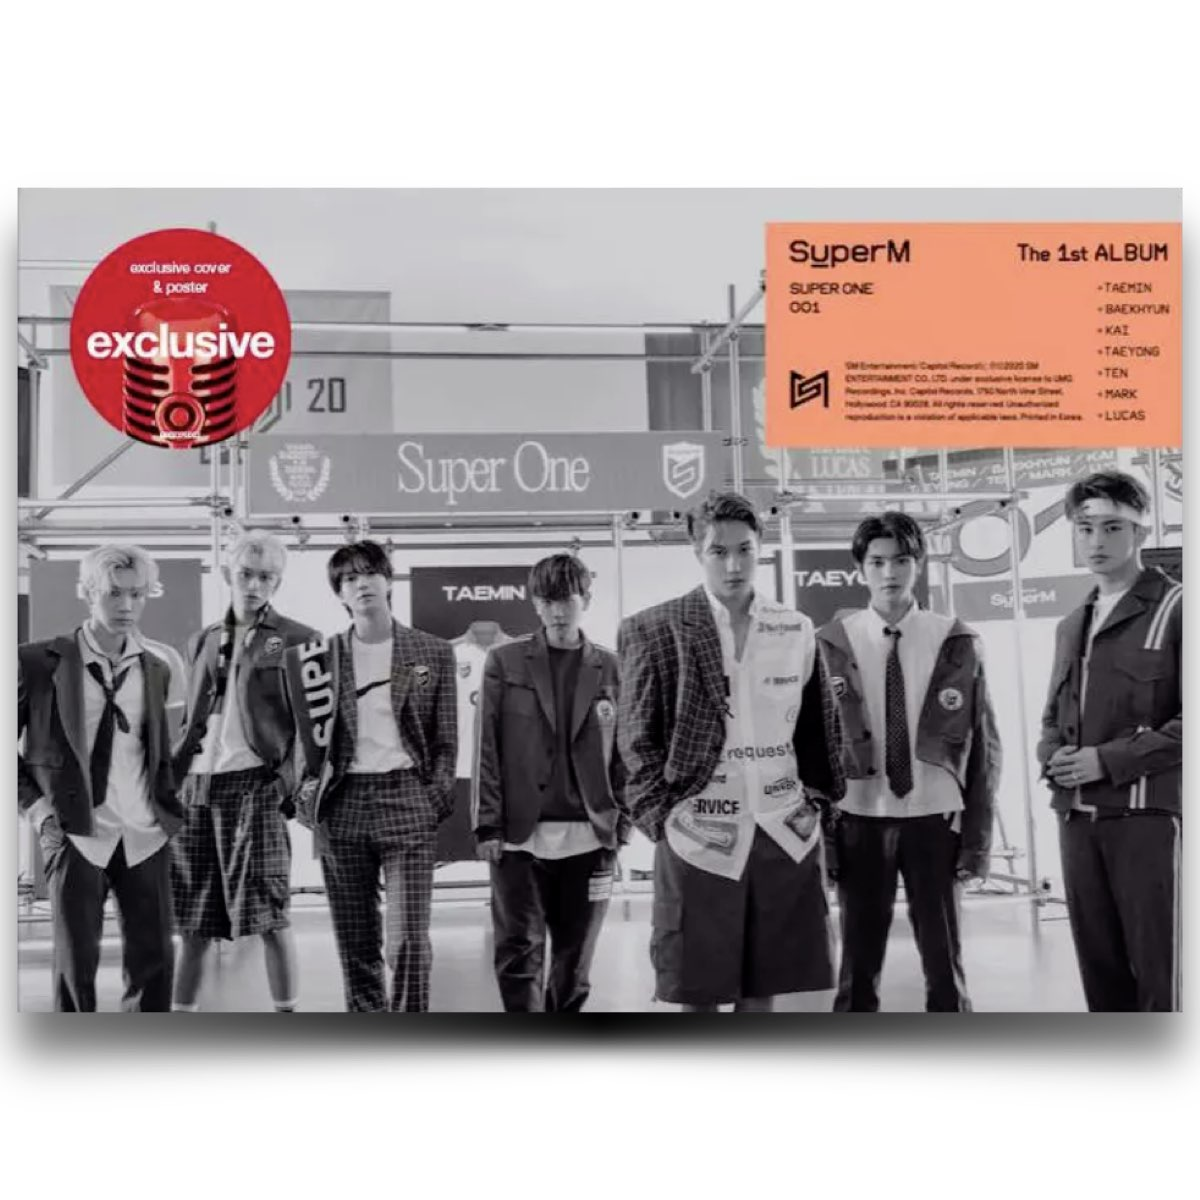 SuperM - Super One [Group Version - Target Exclusive, CD]